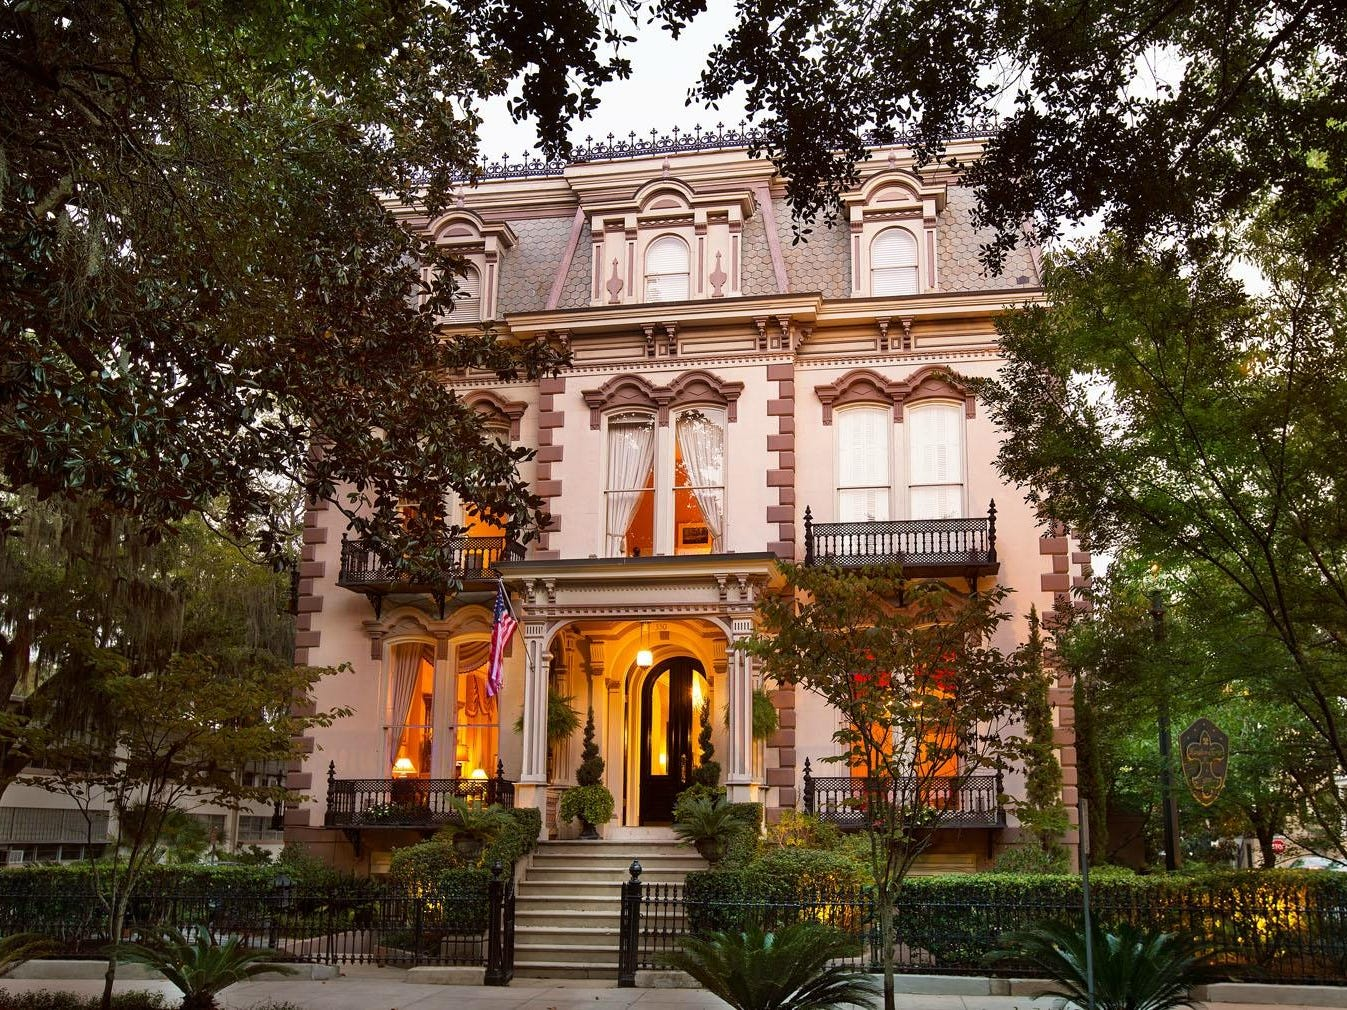 No. 22: Hamilton-Turner Inn in Savannah, Georgia.